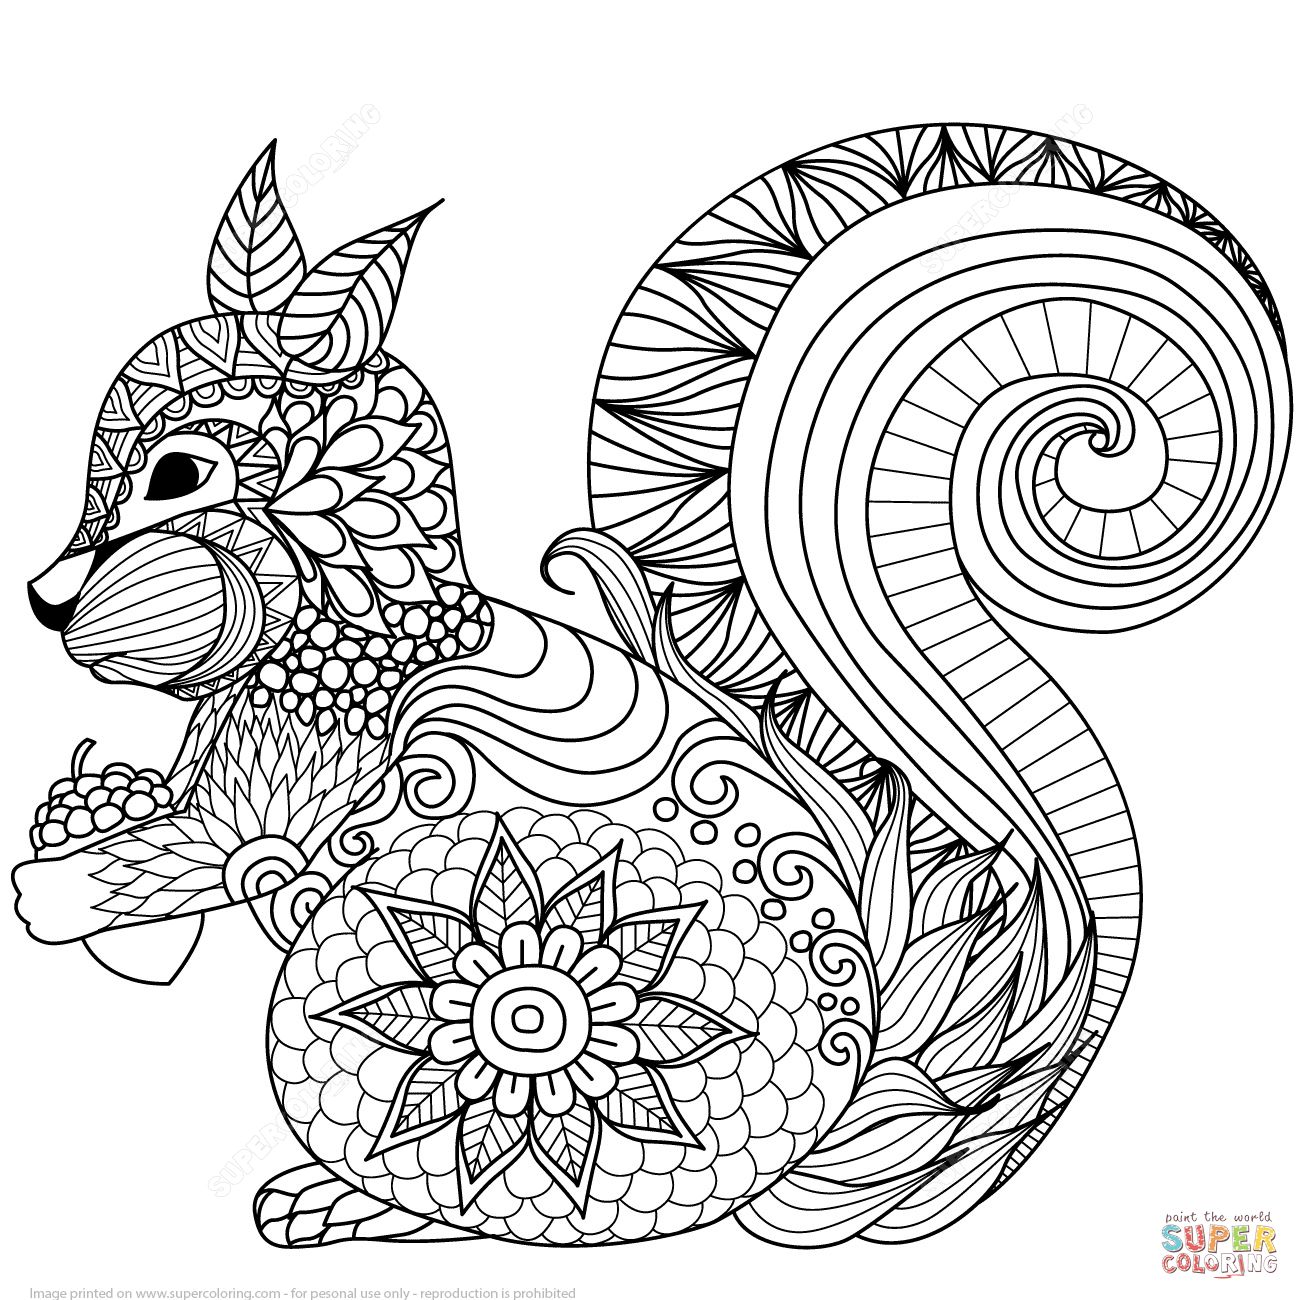 Lovely Squirrel Zentangle coloring page | Free Printable ...